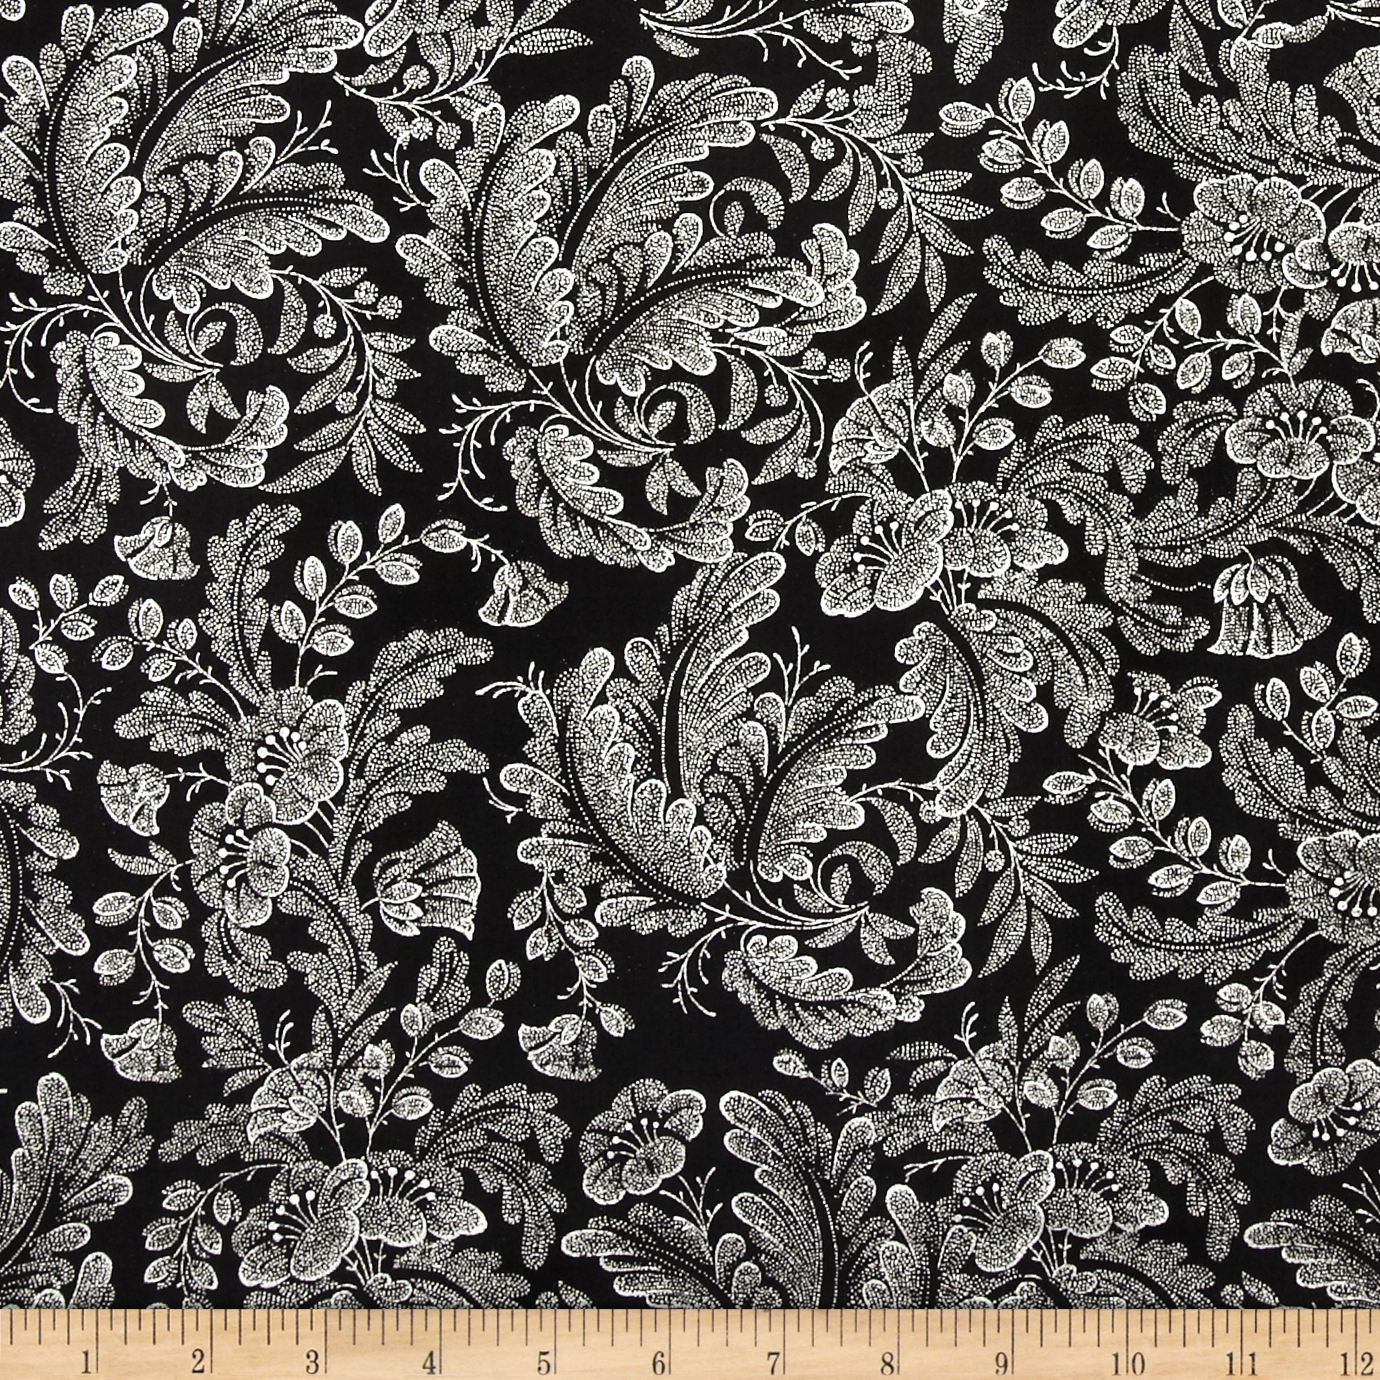 Alchemy Metallic Floral Black/Silver Fabric